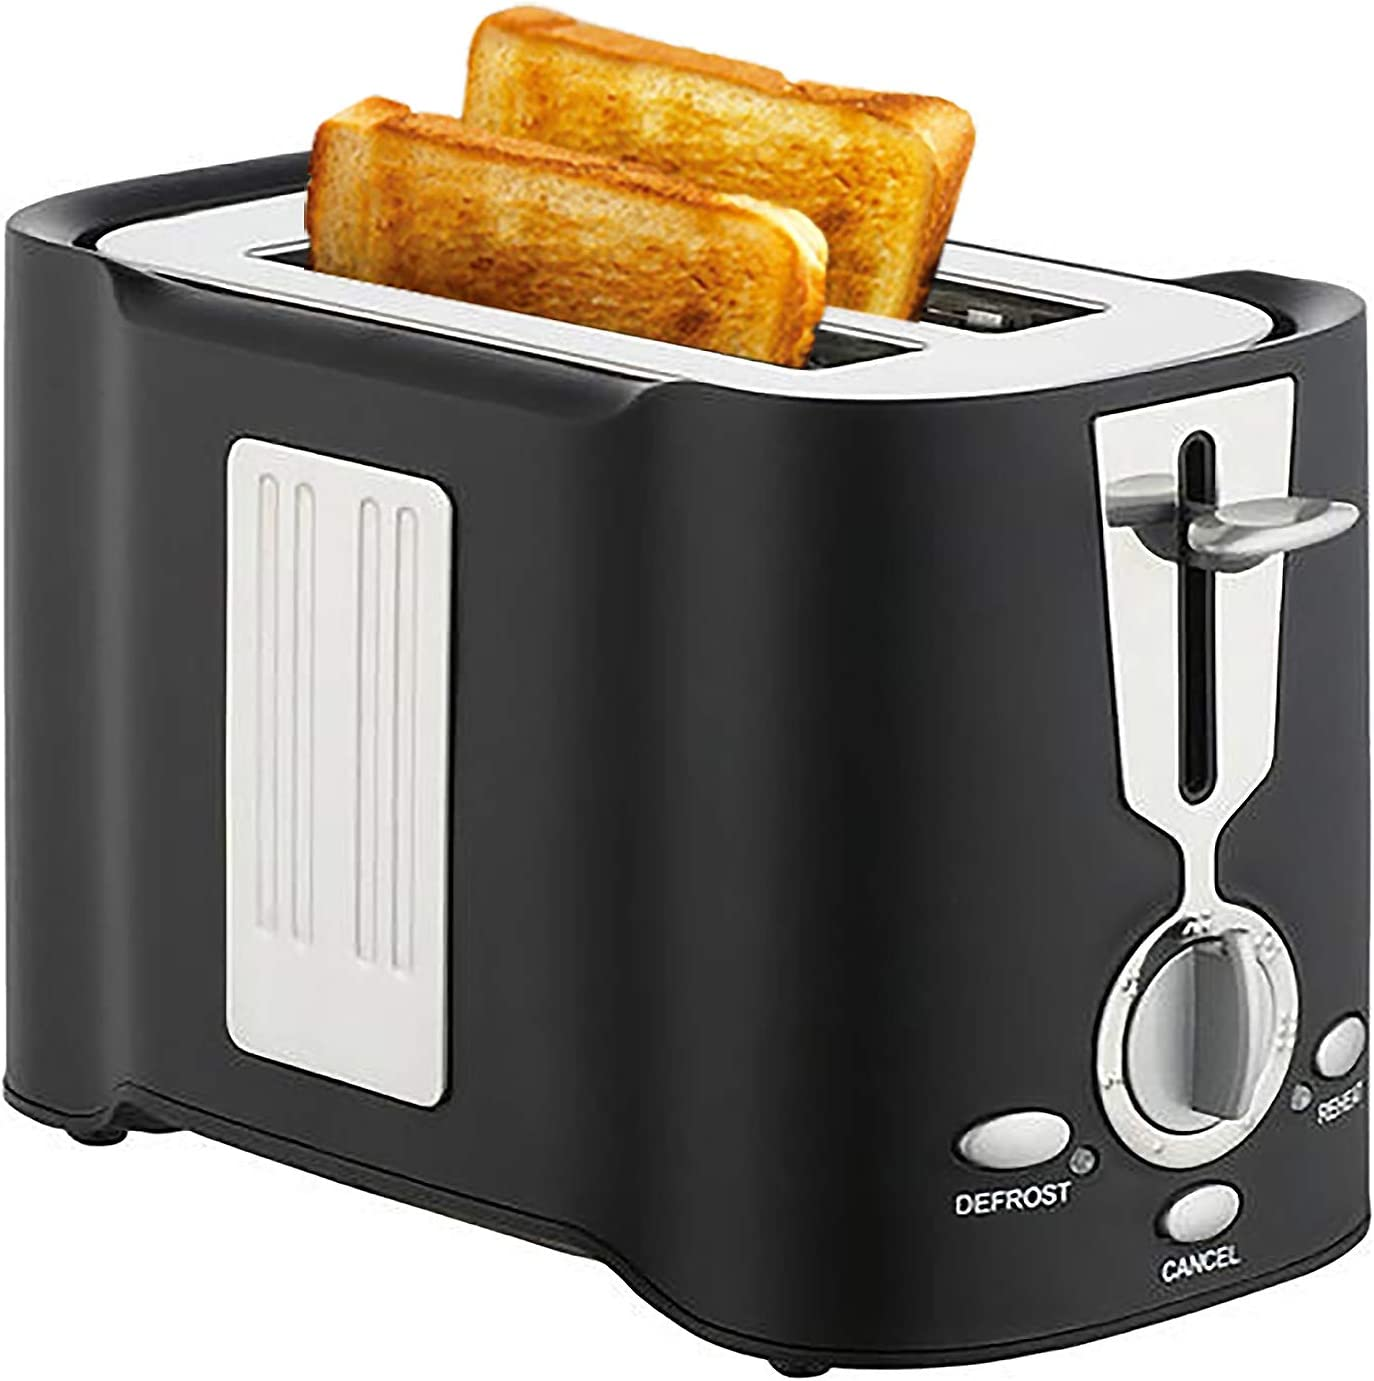 2 Slices Toaster, Stainless Steel Wide Slot Toaster, Detachable Crumb Tray, Defrosting/Reheating/One Key Cancel Function, 6 Kinds of Bread Lampshade Settings, Convenient and Fast (Black)